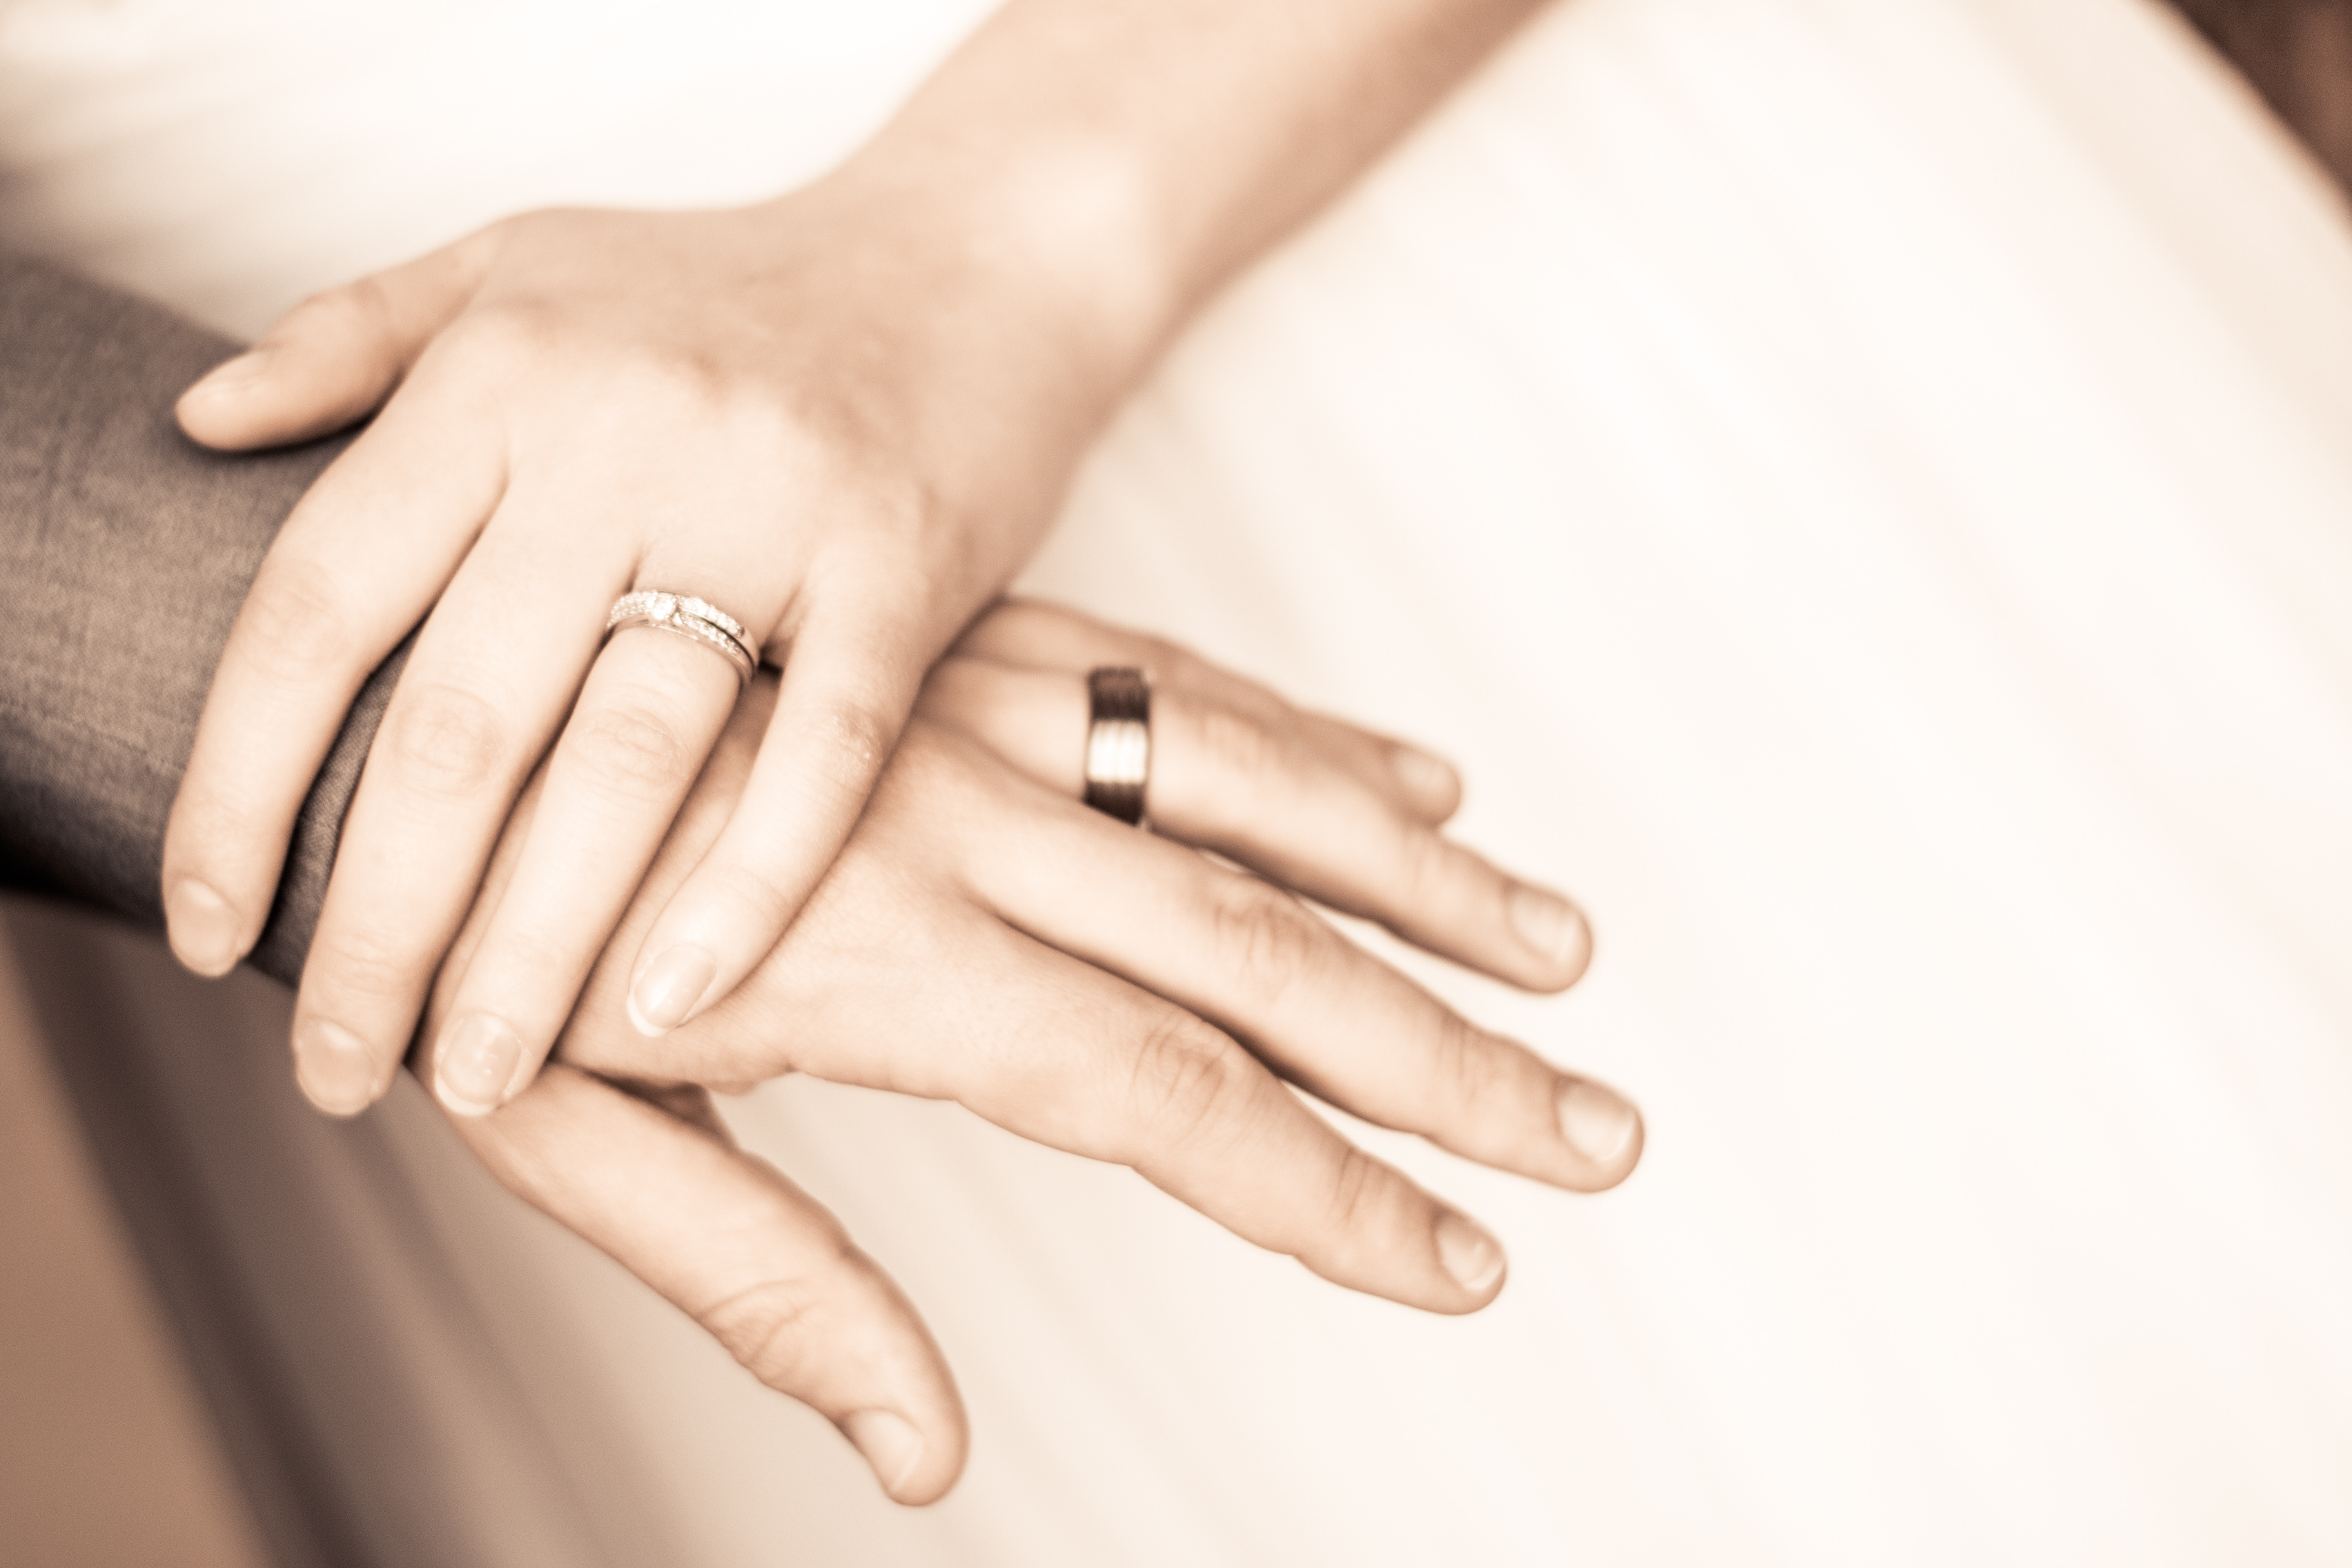 Close-up of Couple Holding Hands, Adult, Marriage, Wedding ring, Wedding, HQ Photo